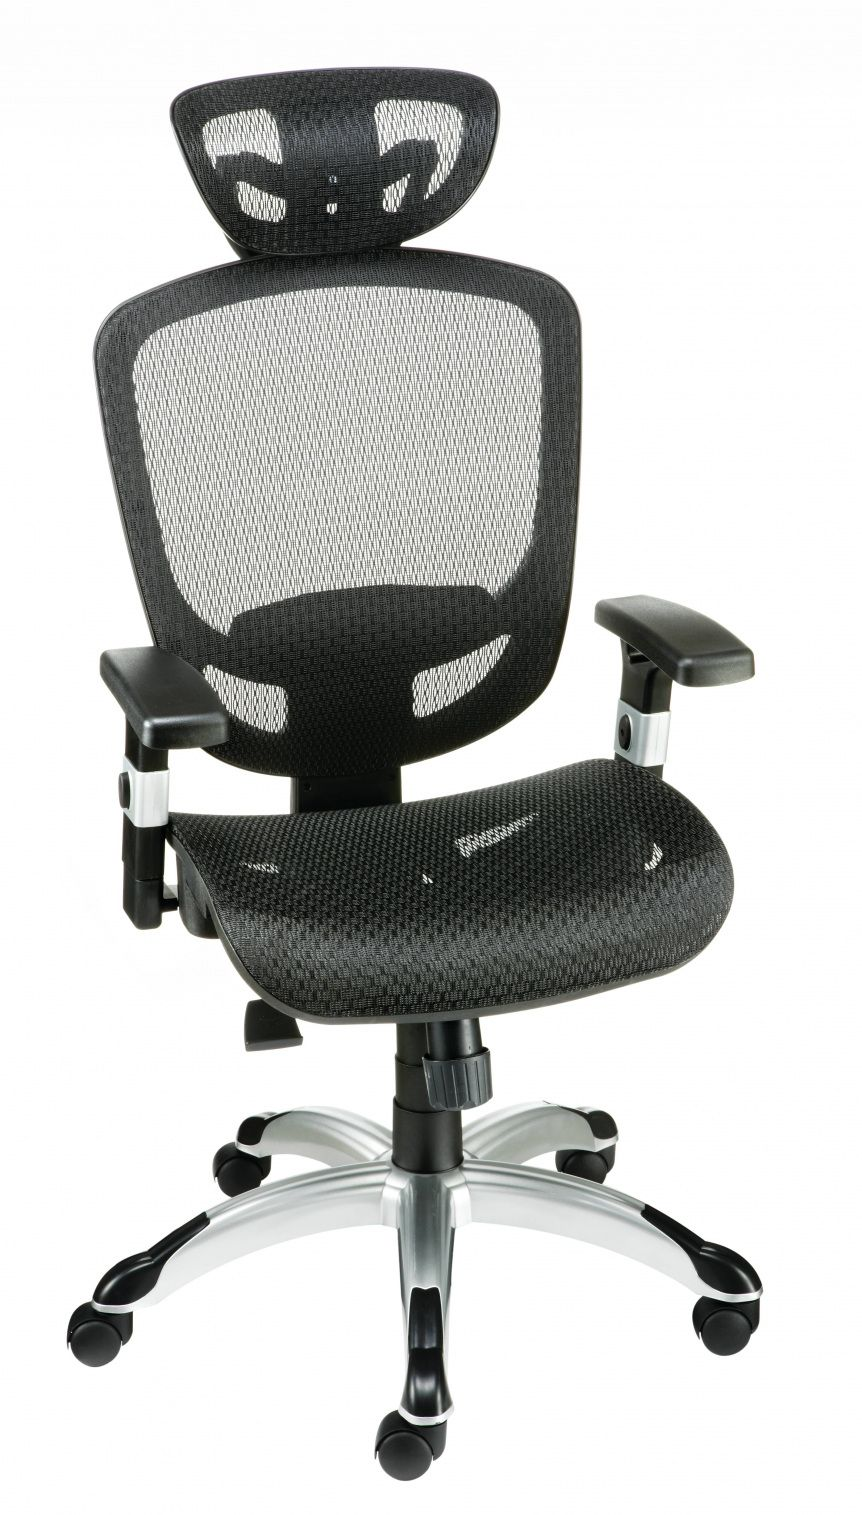 Staples Office Chairs Home Office Furniture Desk Check More At Http Www Drjamesghoodblog Com Staples Office Chairs